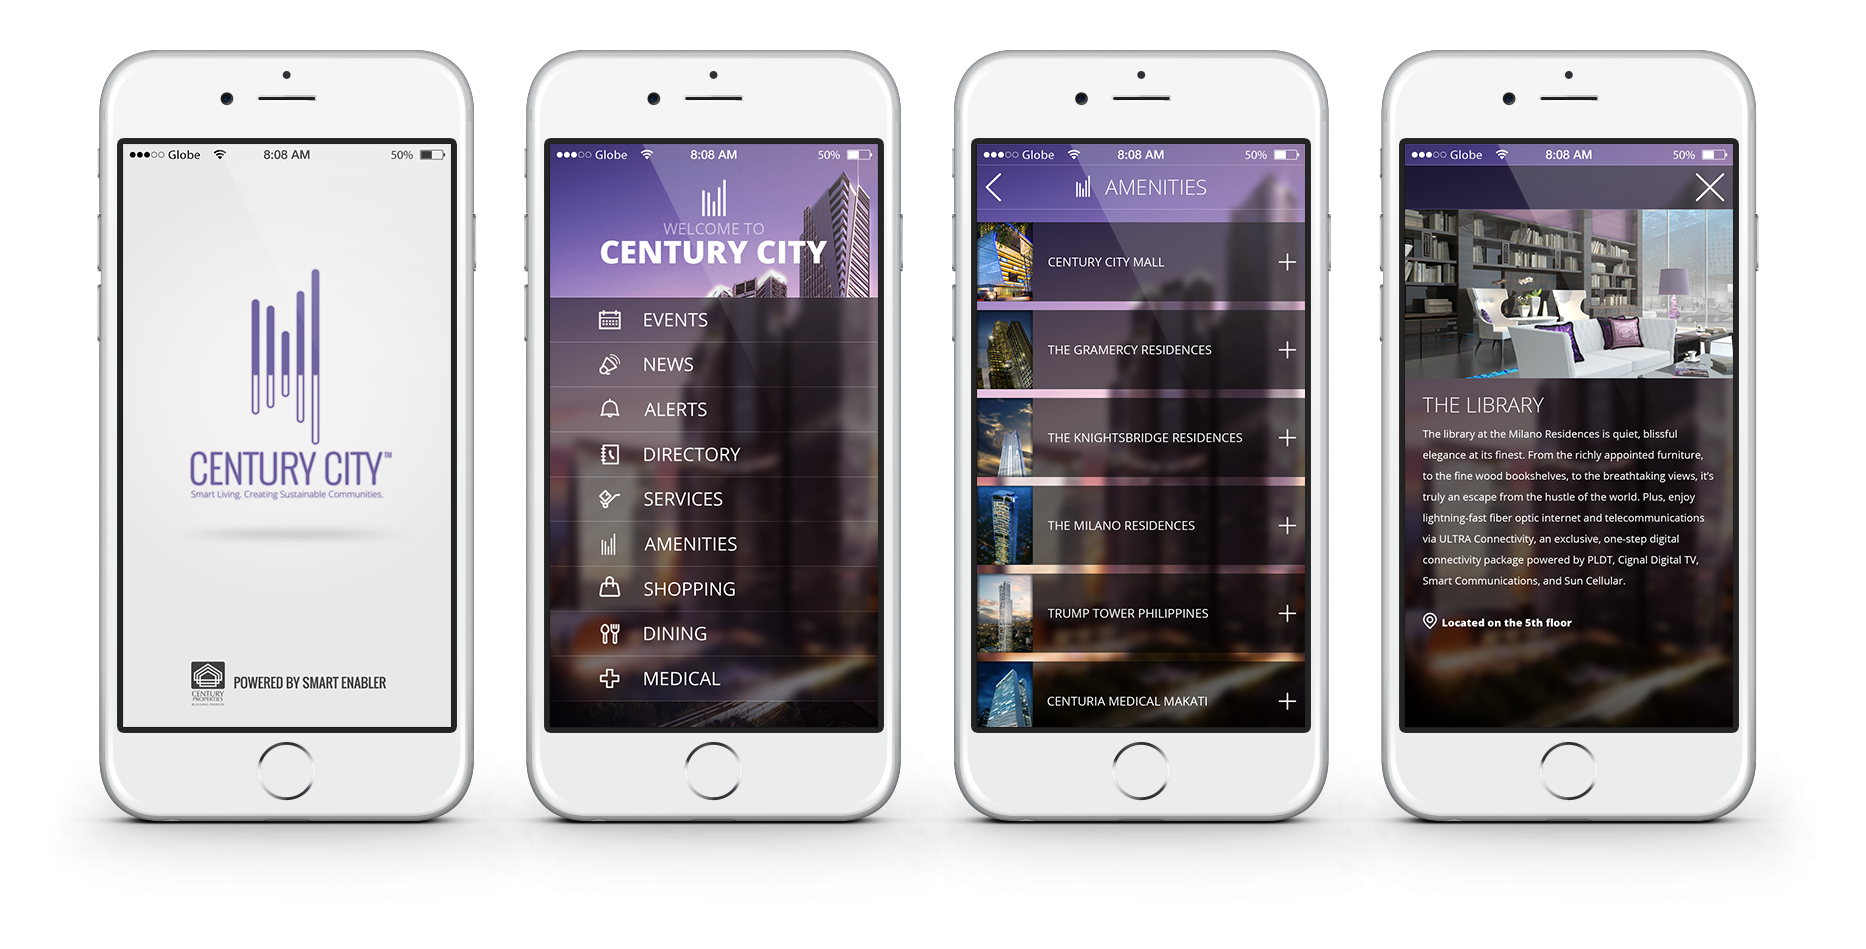 Portfolio Gallery - Century City mobile app